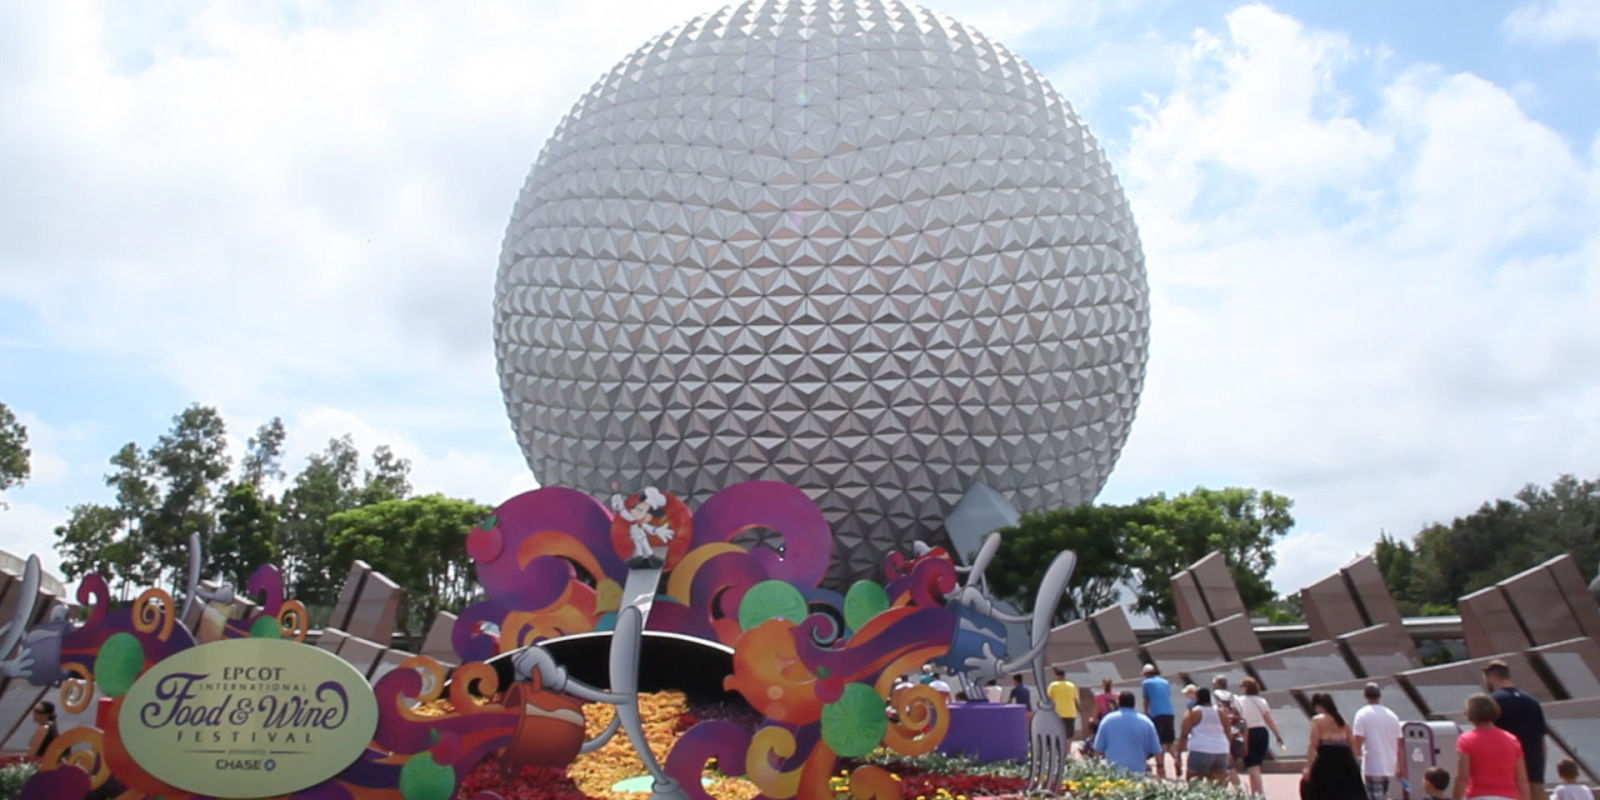 Epcot Is About To Get A Dramatic Makeover